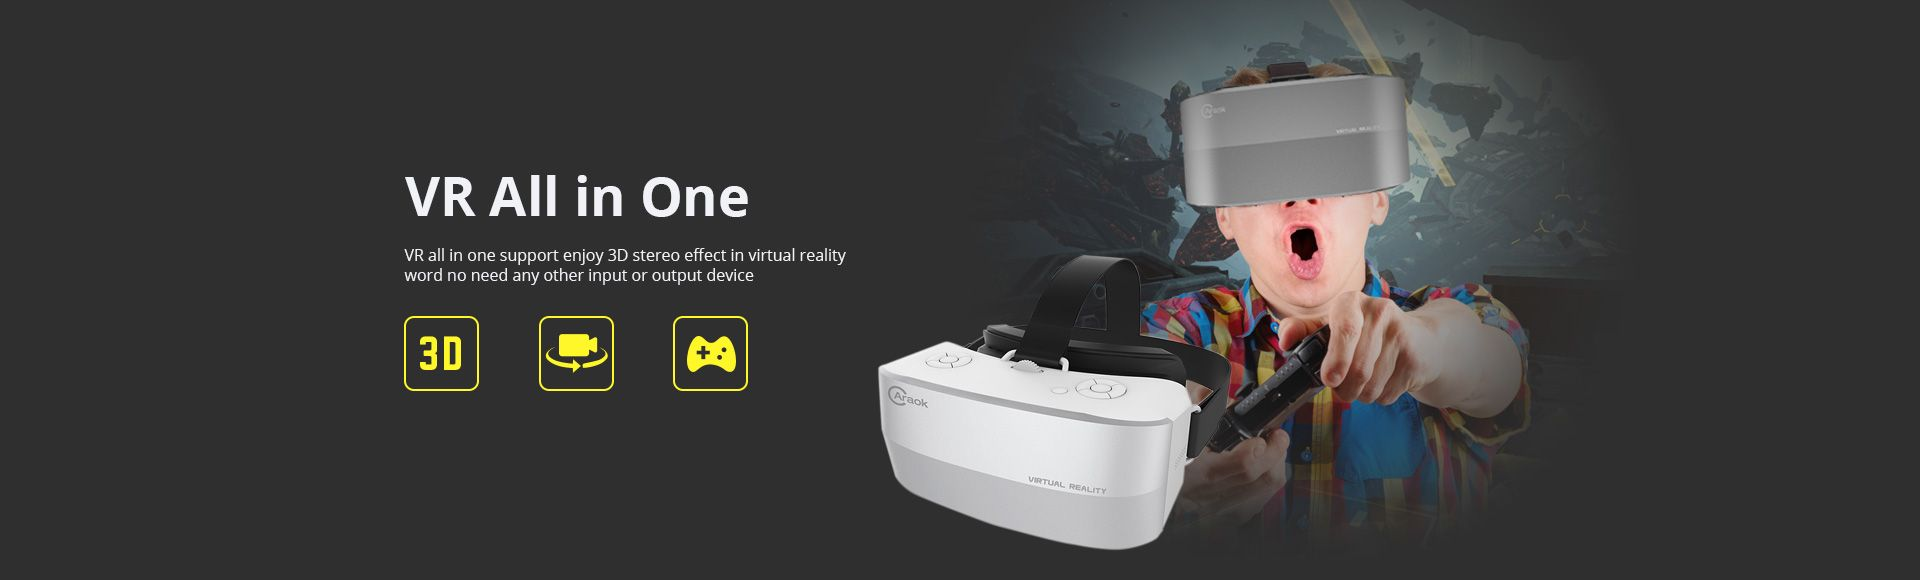 Caraok V12 Android 4.4 All-in-One 3D VR Glasses  -  Allwinner H8 Quad Core 2G 16G Support Wifi Bluetooth OTG TF Card